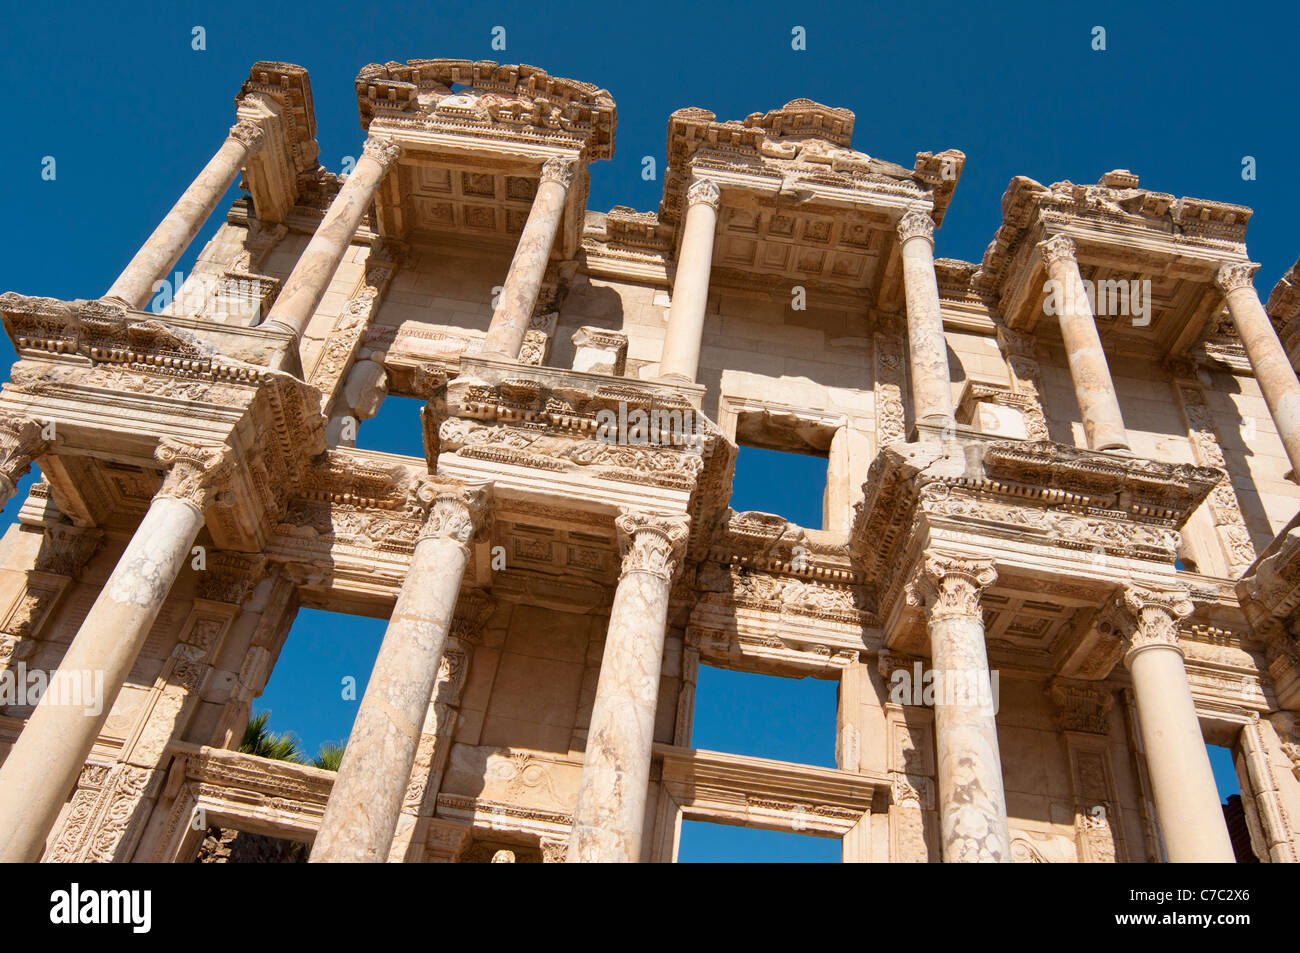 Ruins of the facade of library Celsus bibliotheque in the ancient town of Ephesus in Turkey - Stock Image